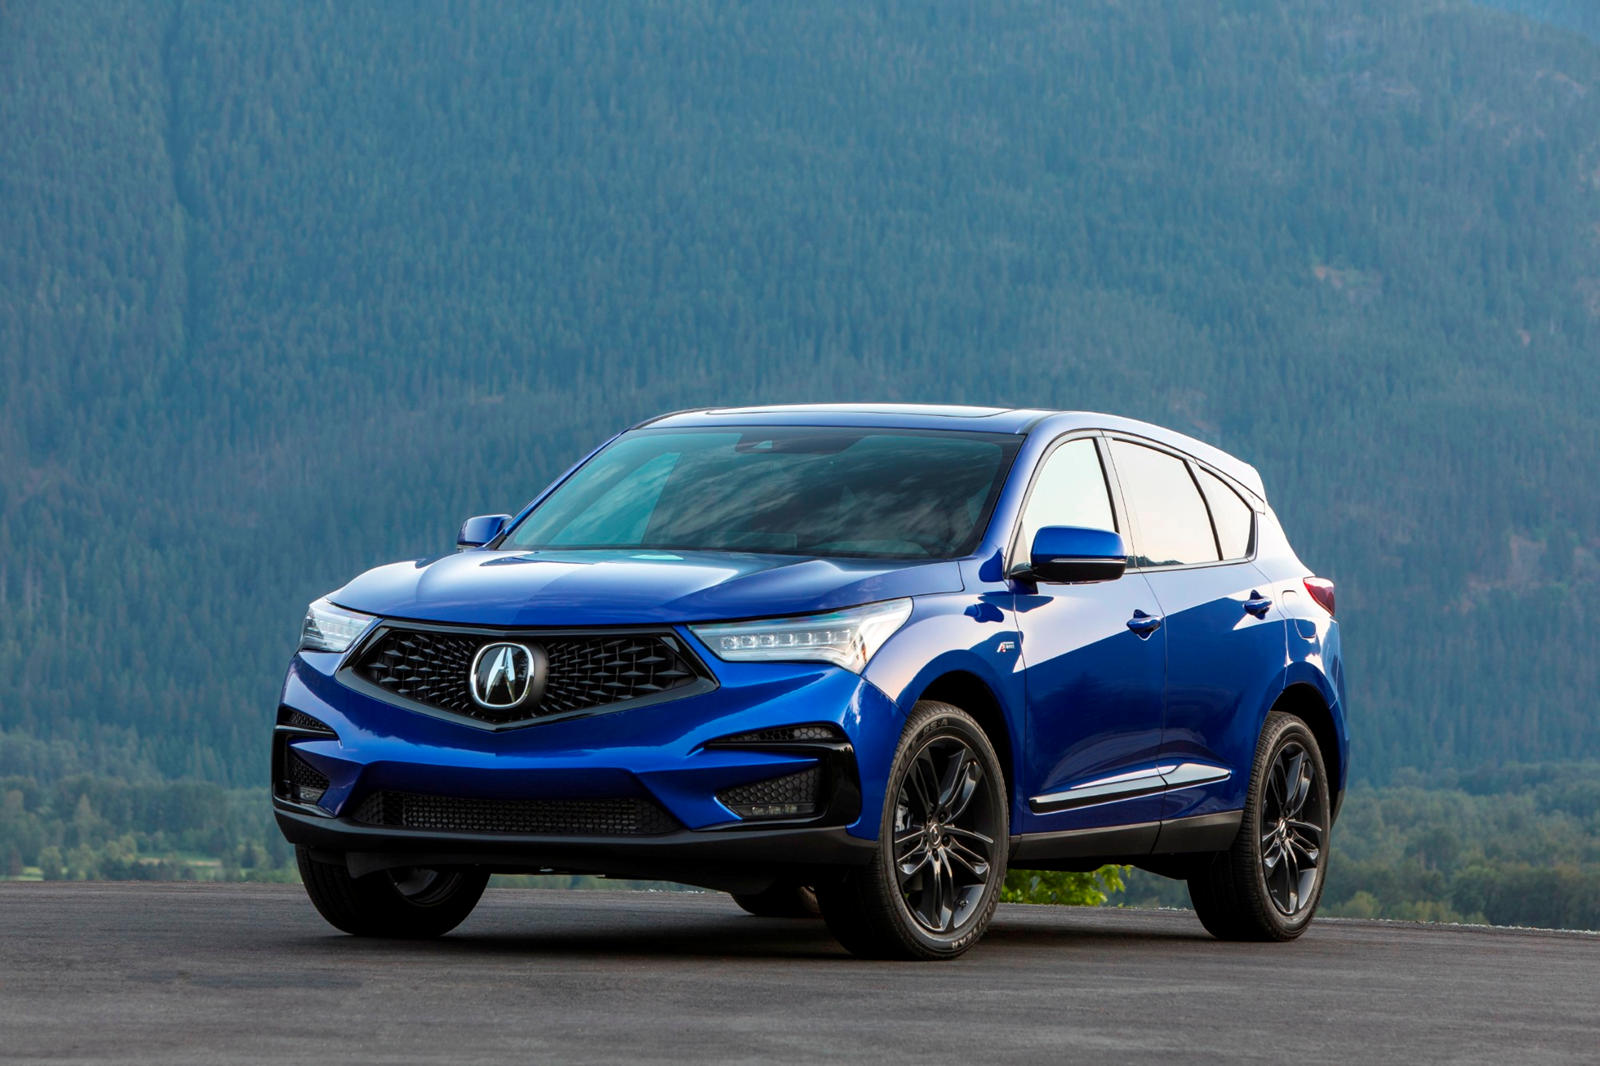 2020 Acura RDX SUV Front View